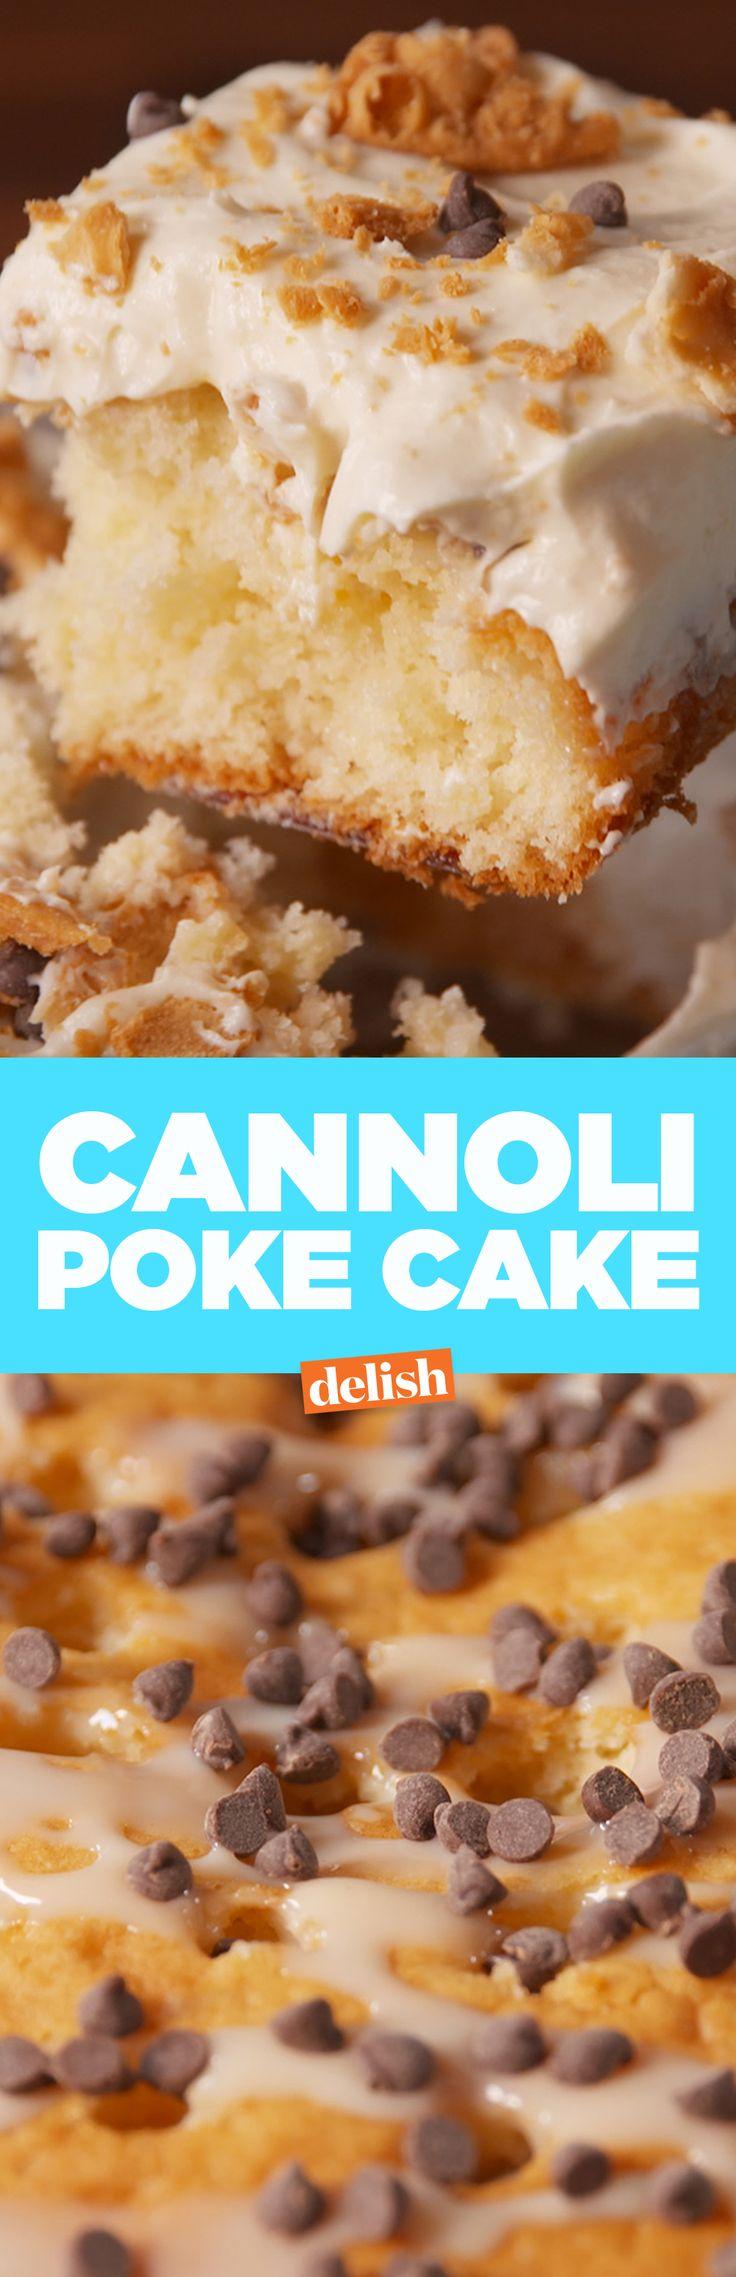 This cannoli poke cake is so much easier than making an actual cannoli. Get the recipe on Delish.com.